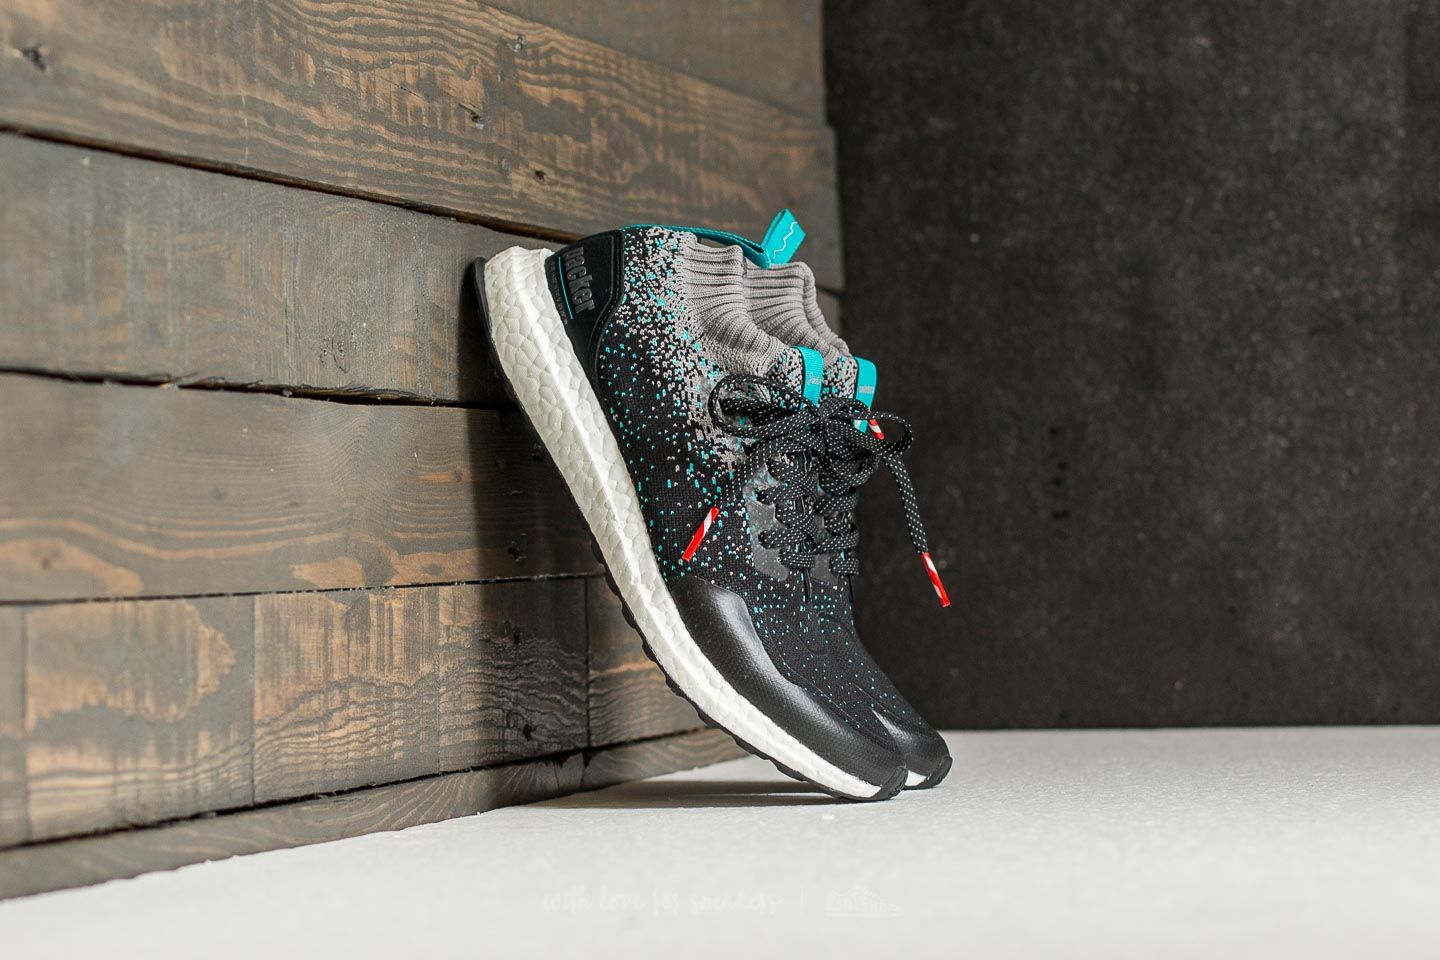 adidas Consortium x Packer x Solebox Ultraboost Mid S.E. Core Black/ Energy Blue